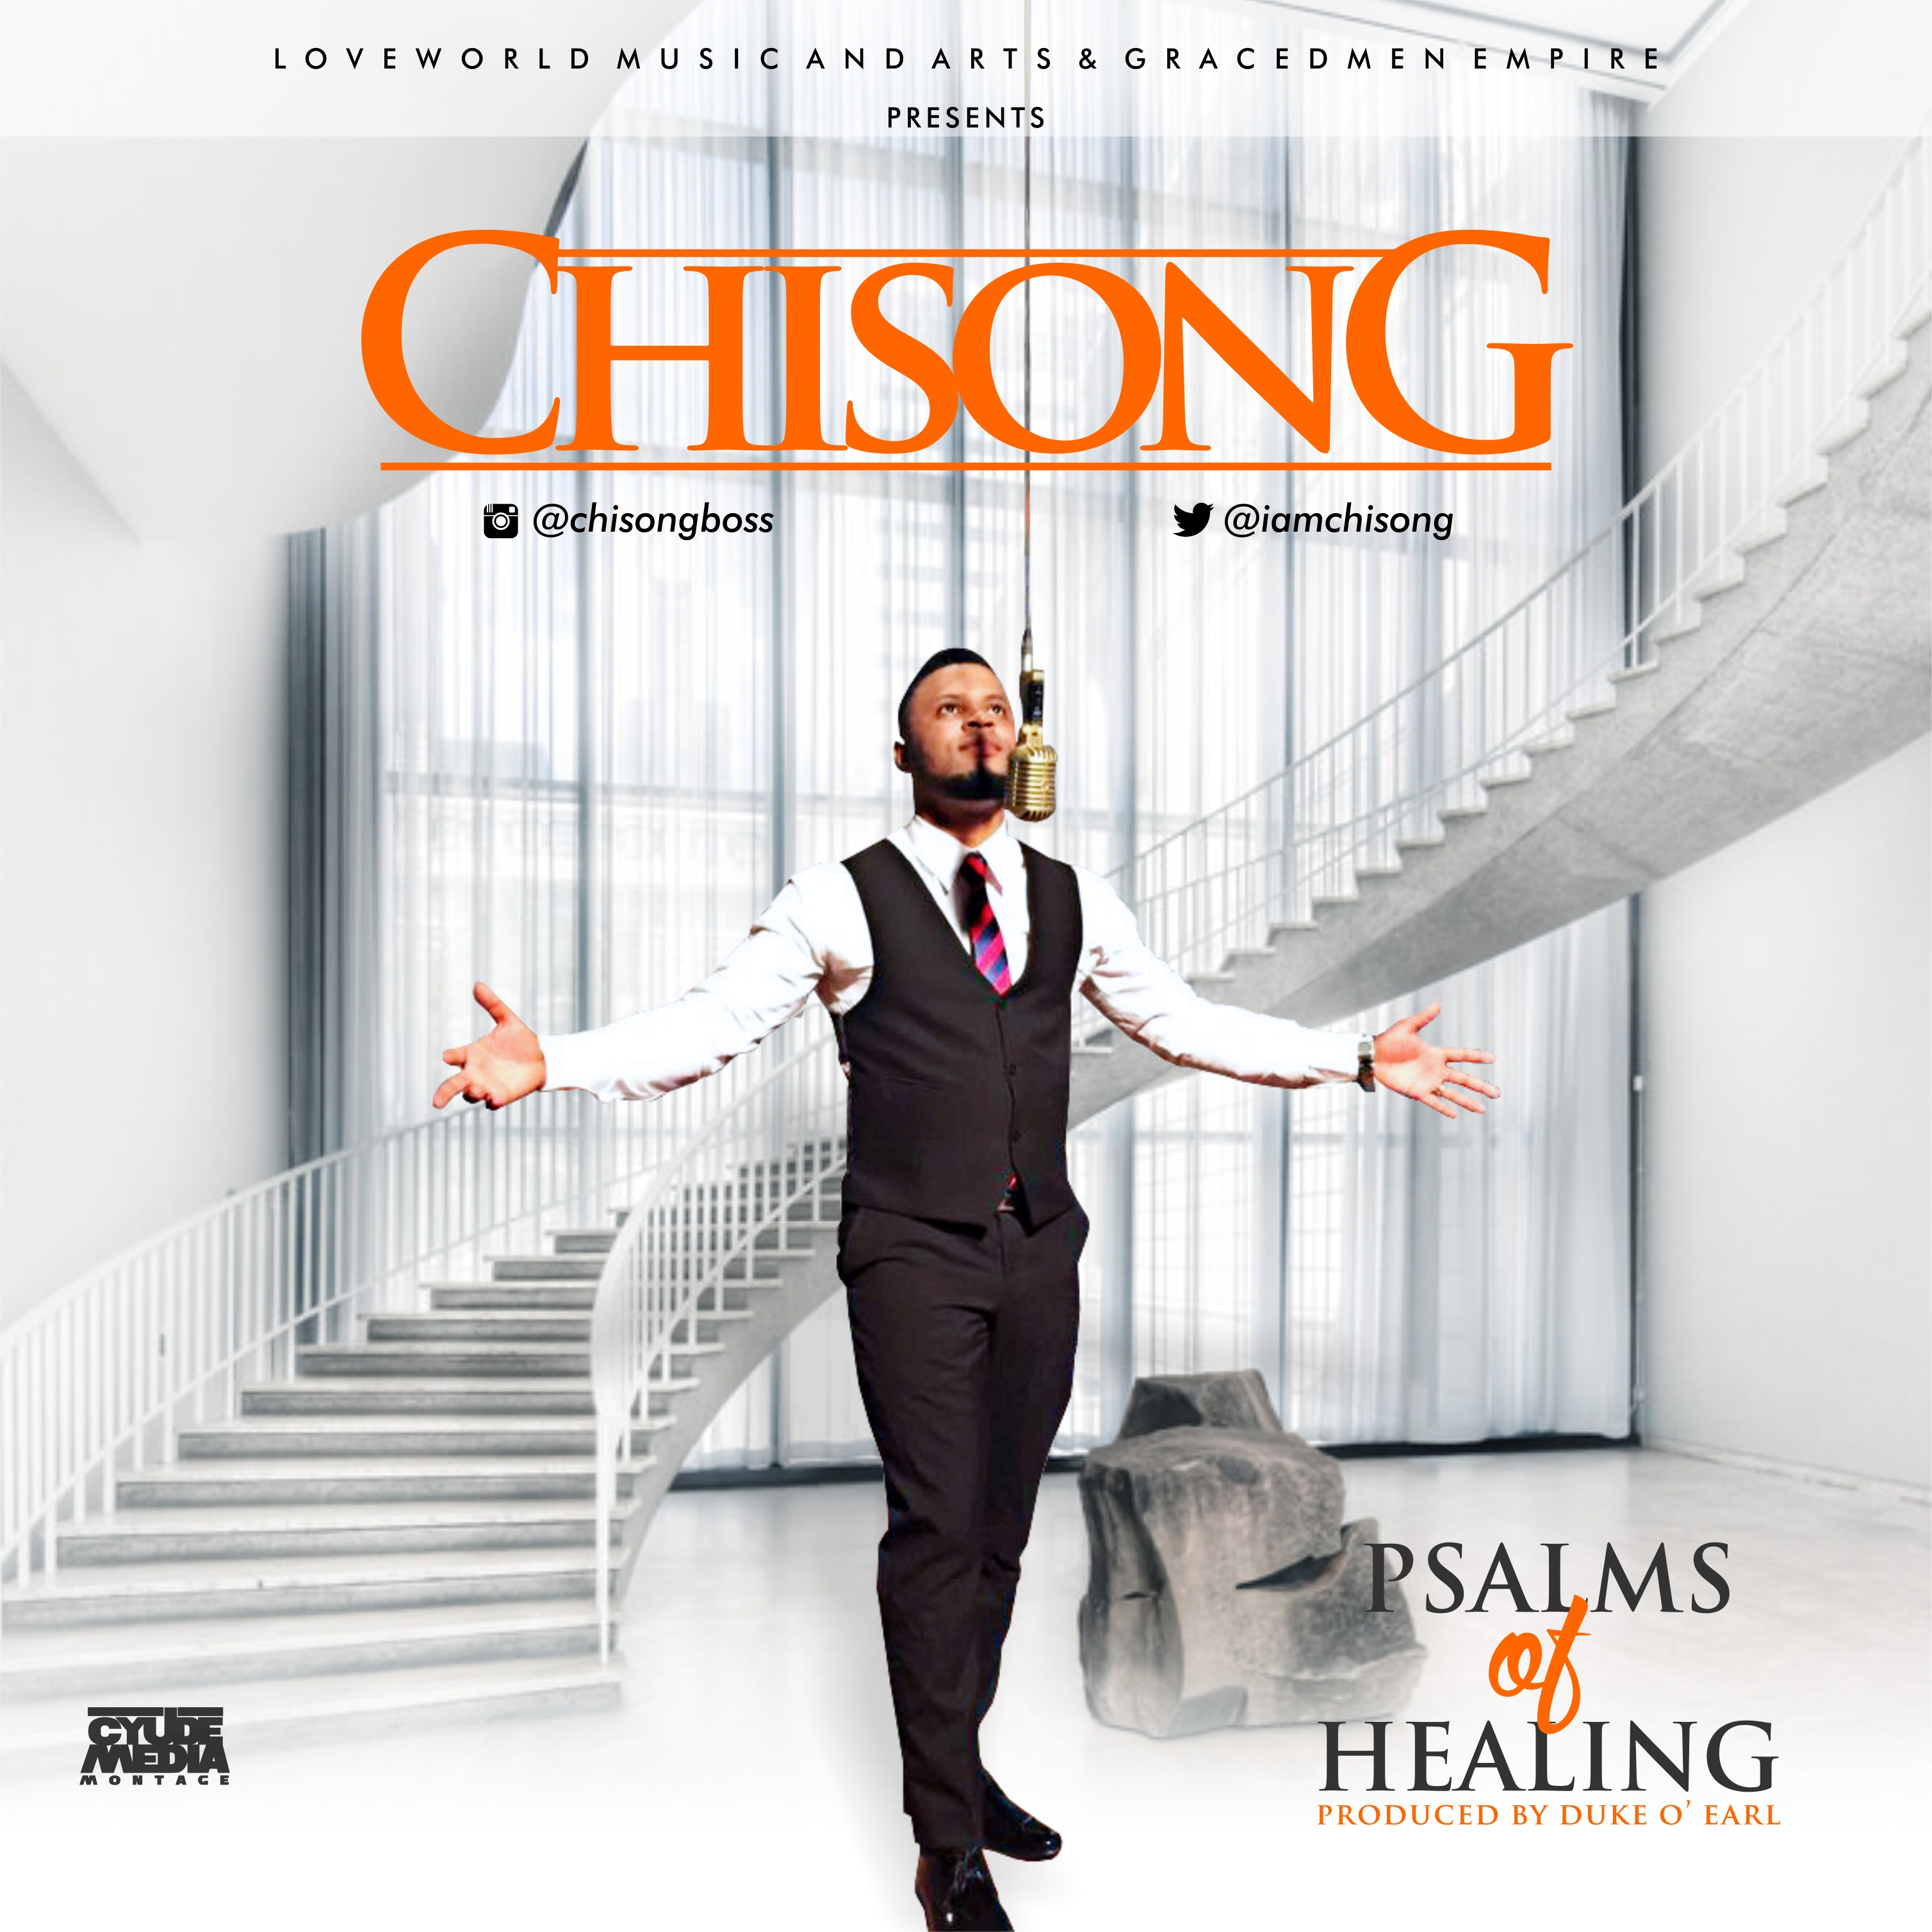 PSALMS OF HEALING - Chisong [@iamchisong]